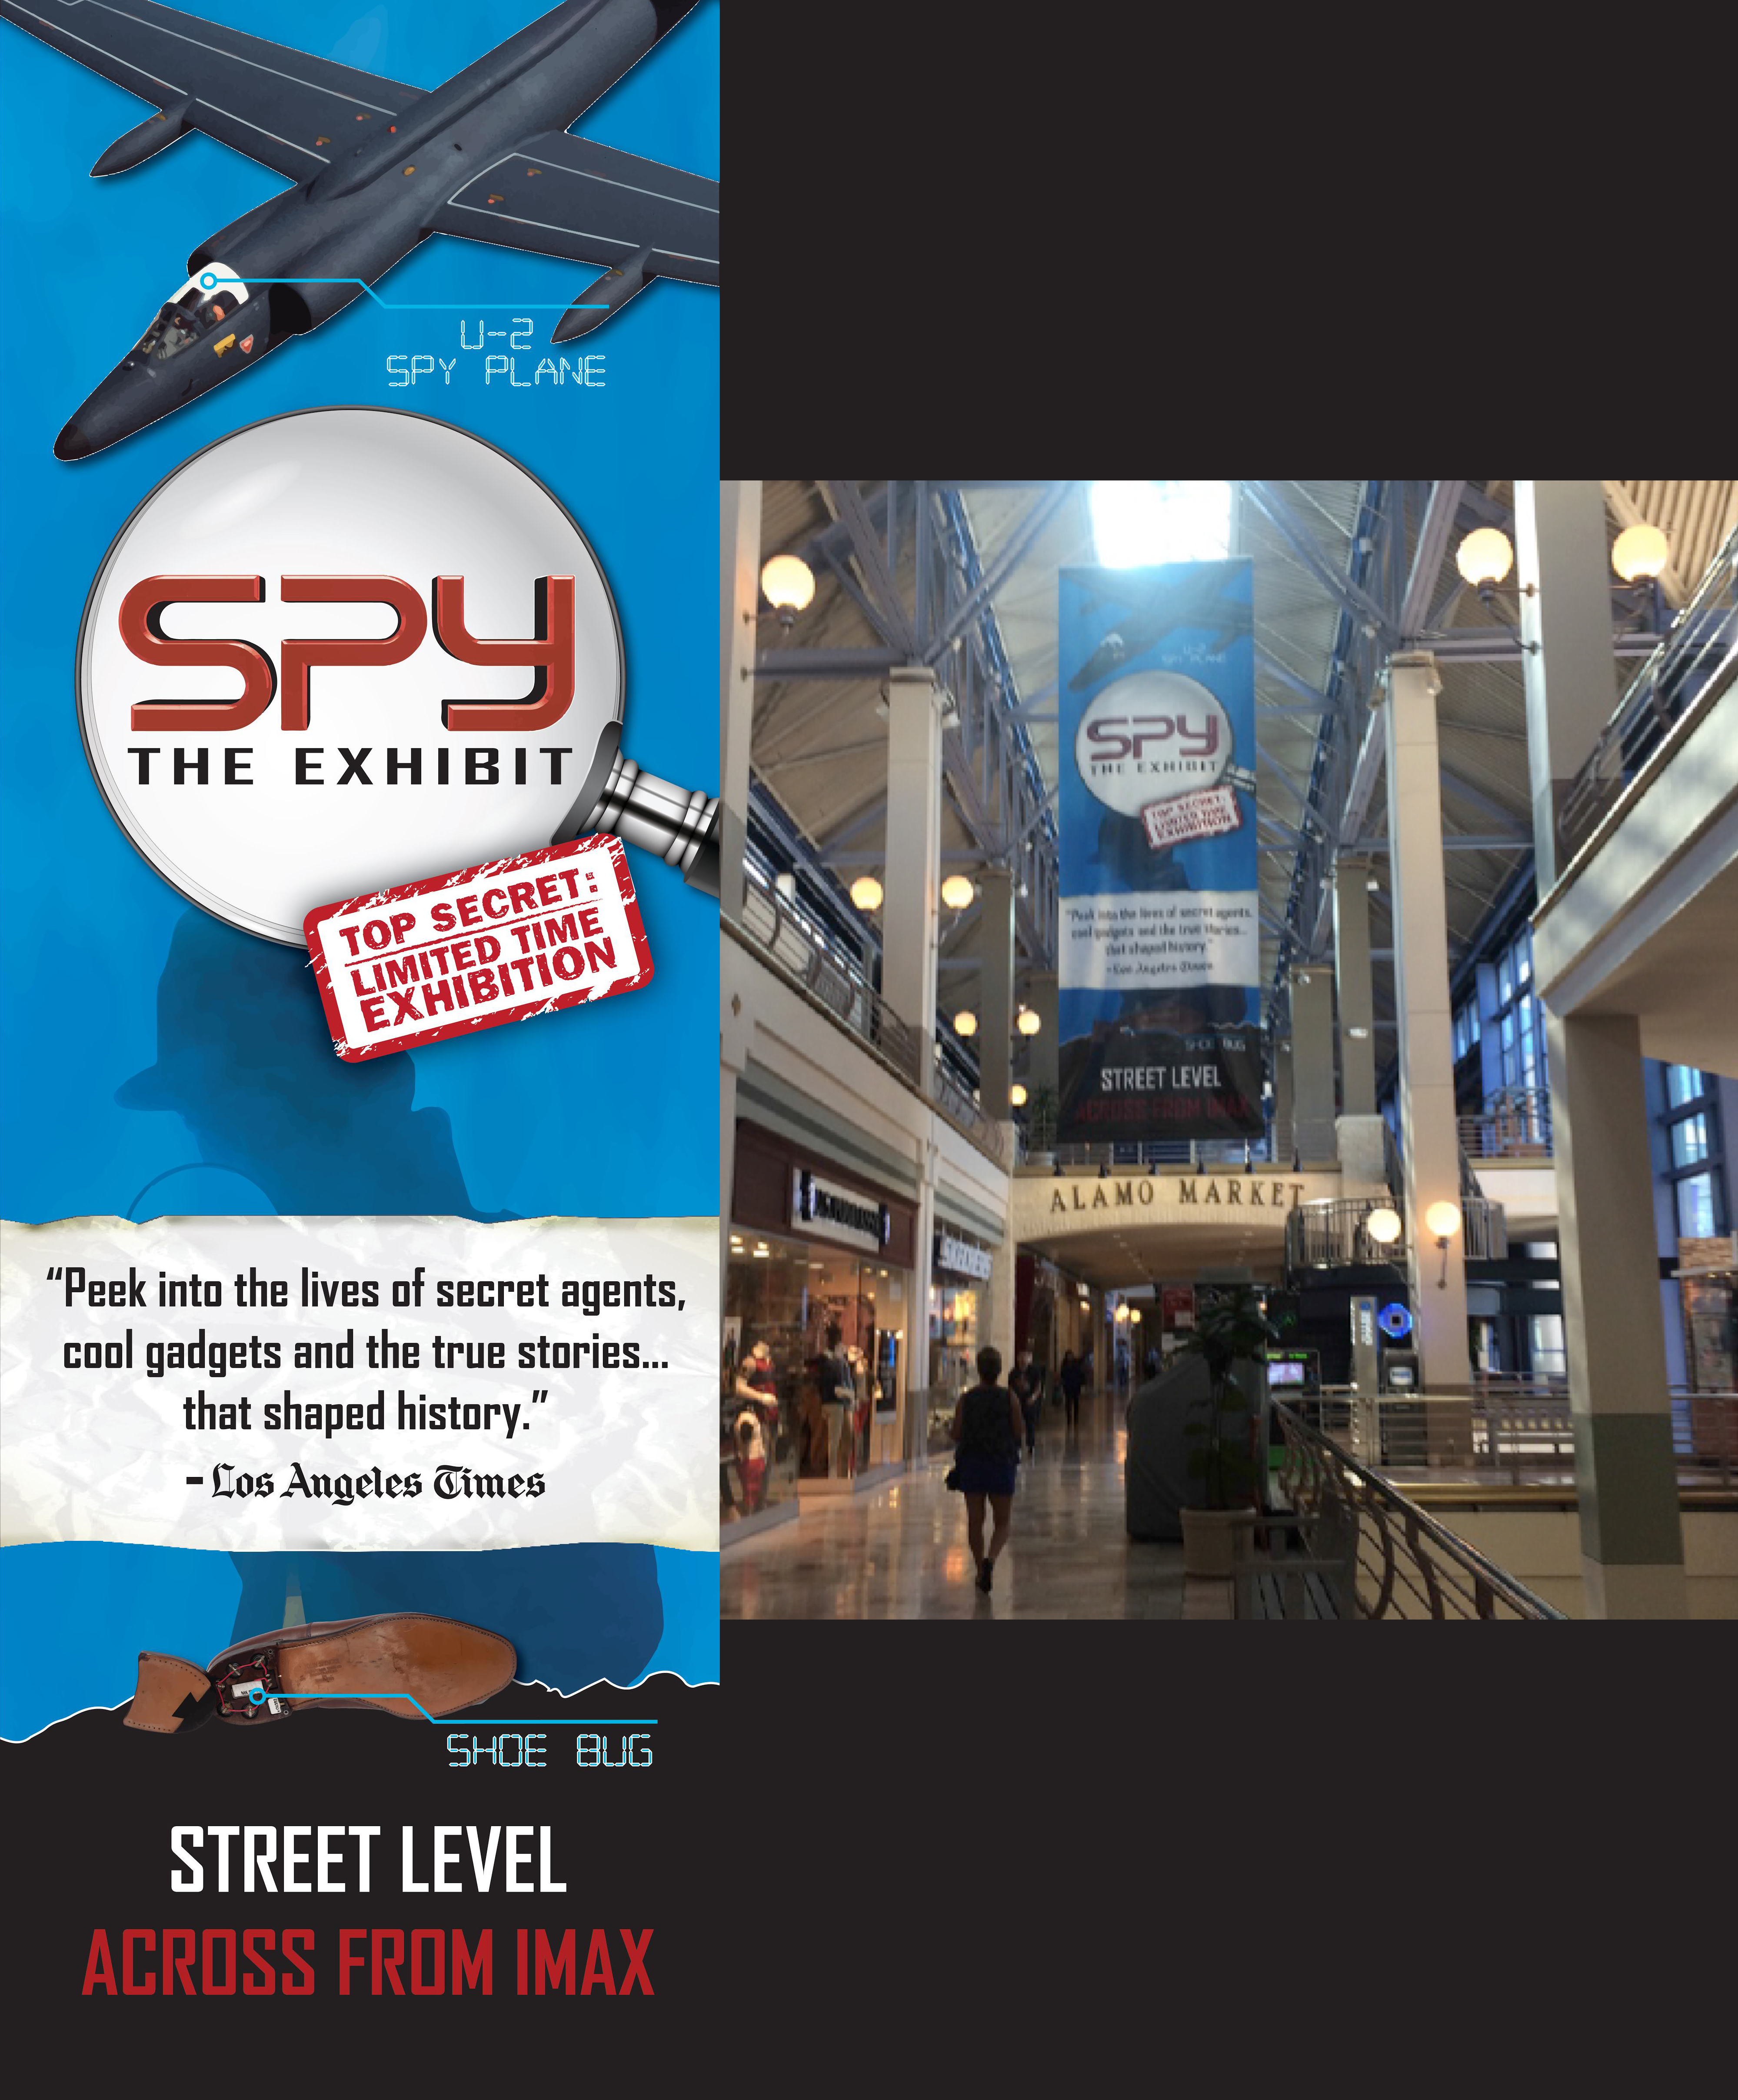 SPY: The Exhibit Sky Mural